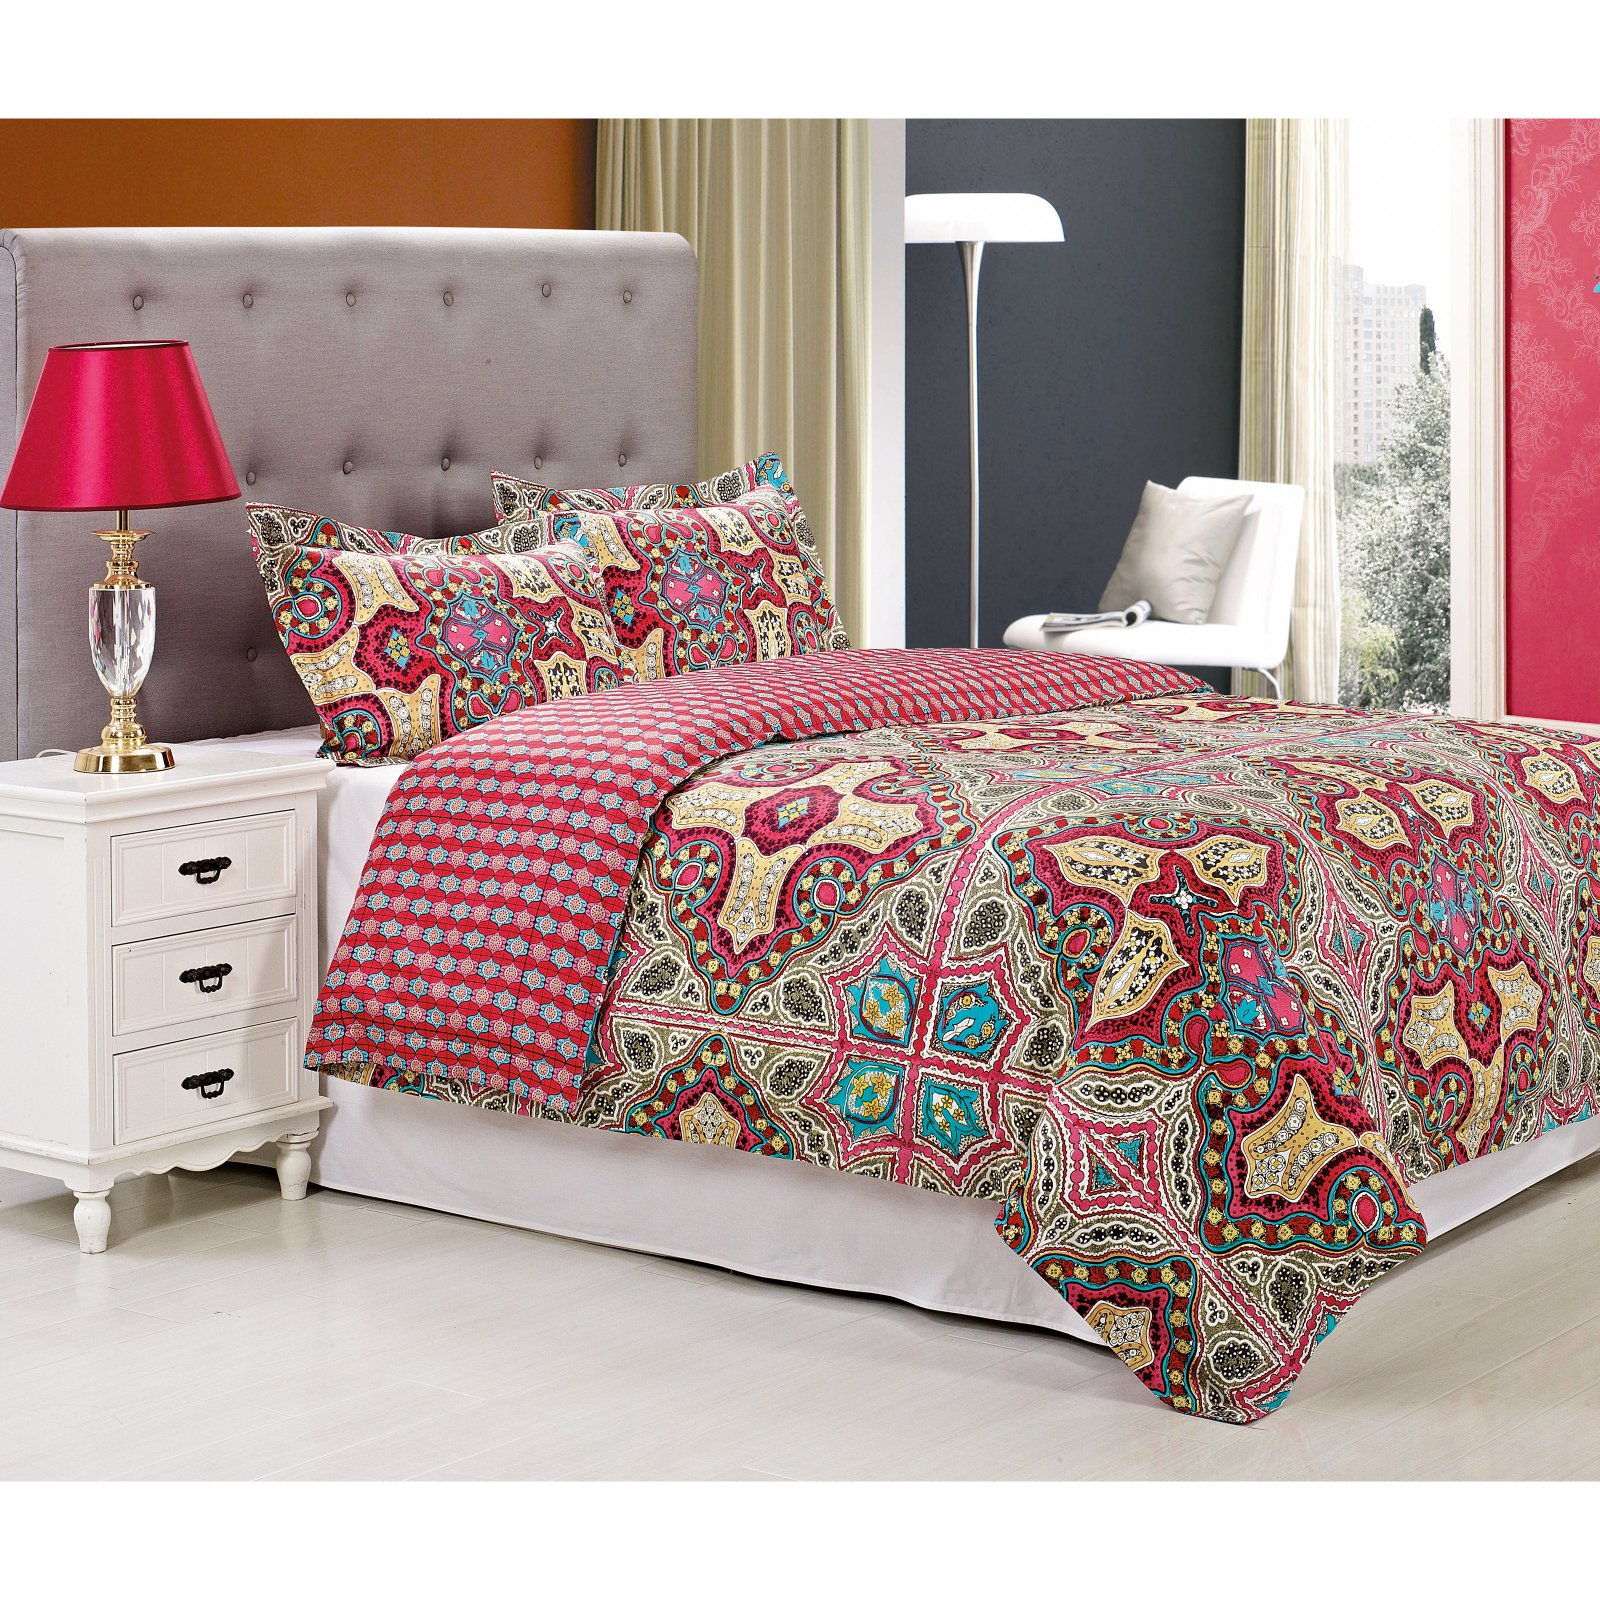 Superior Wildberry Reversible 300 Thread Count Cotton Reactive Print Duvet Cover Set